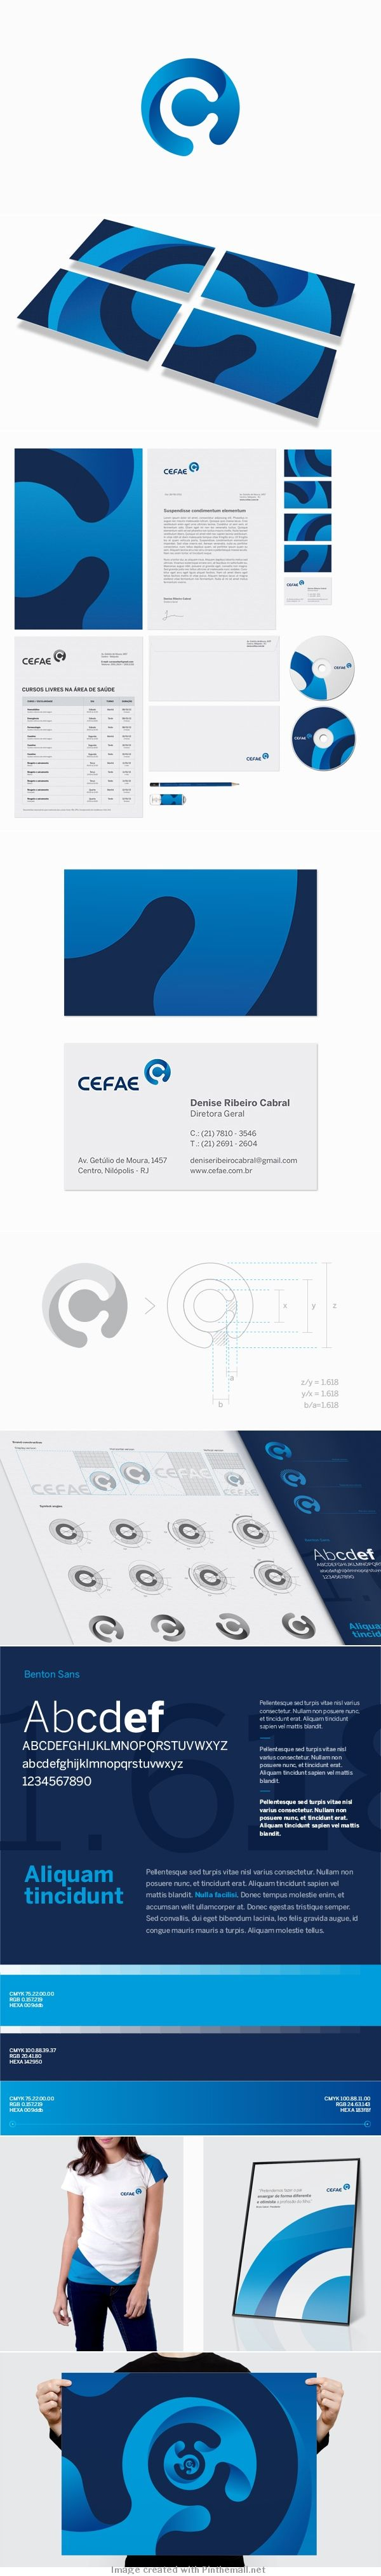 CEFAE  #branding #identity  Interesting but confusing. I don't think I'd take this approach but I've seen others who do it well